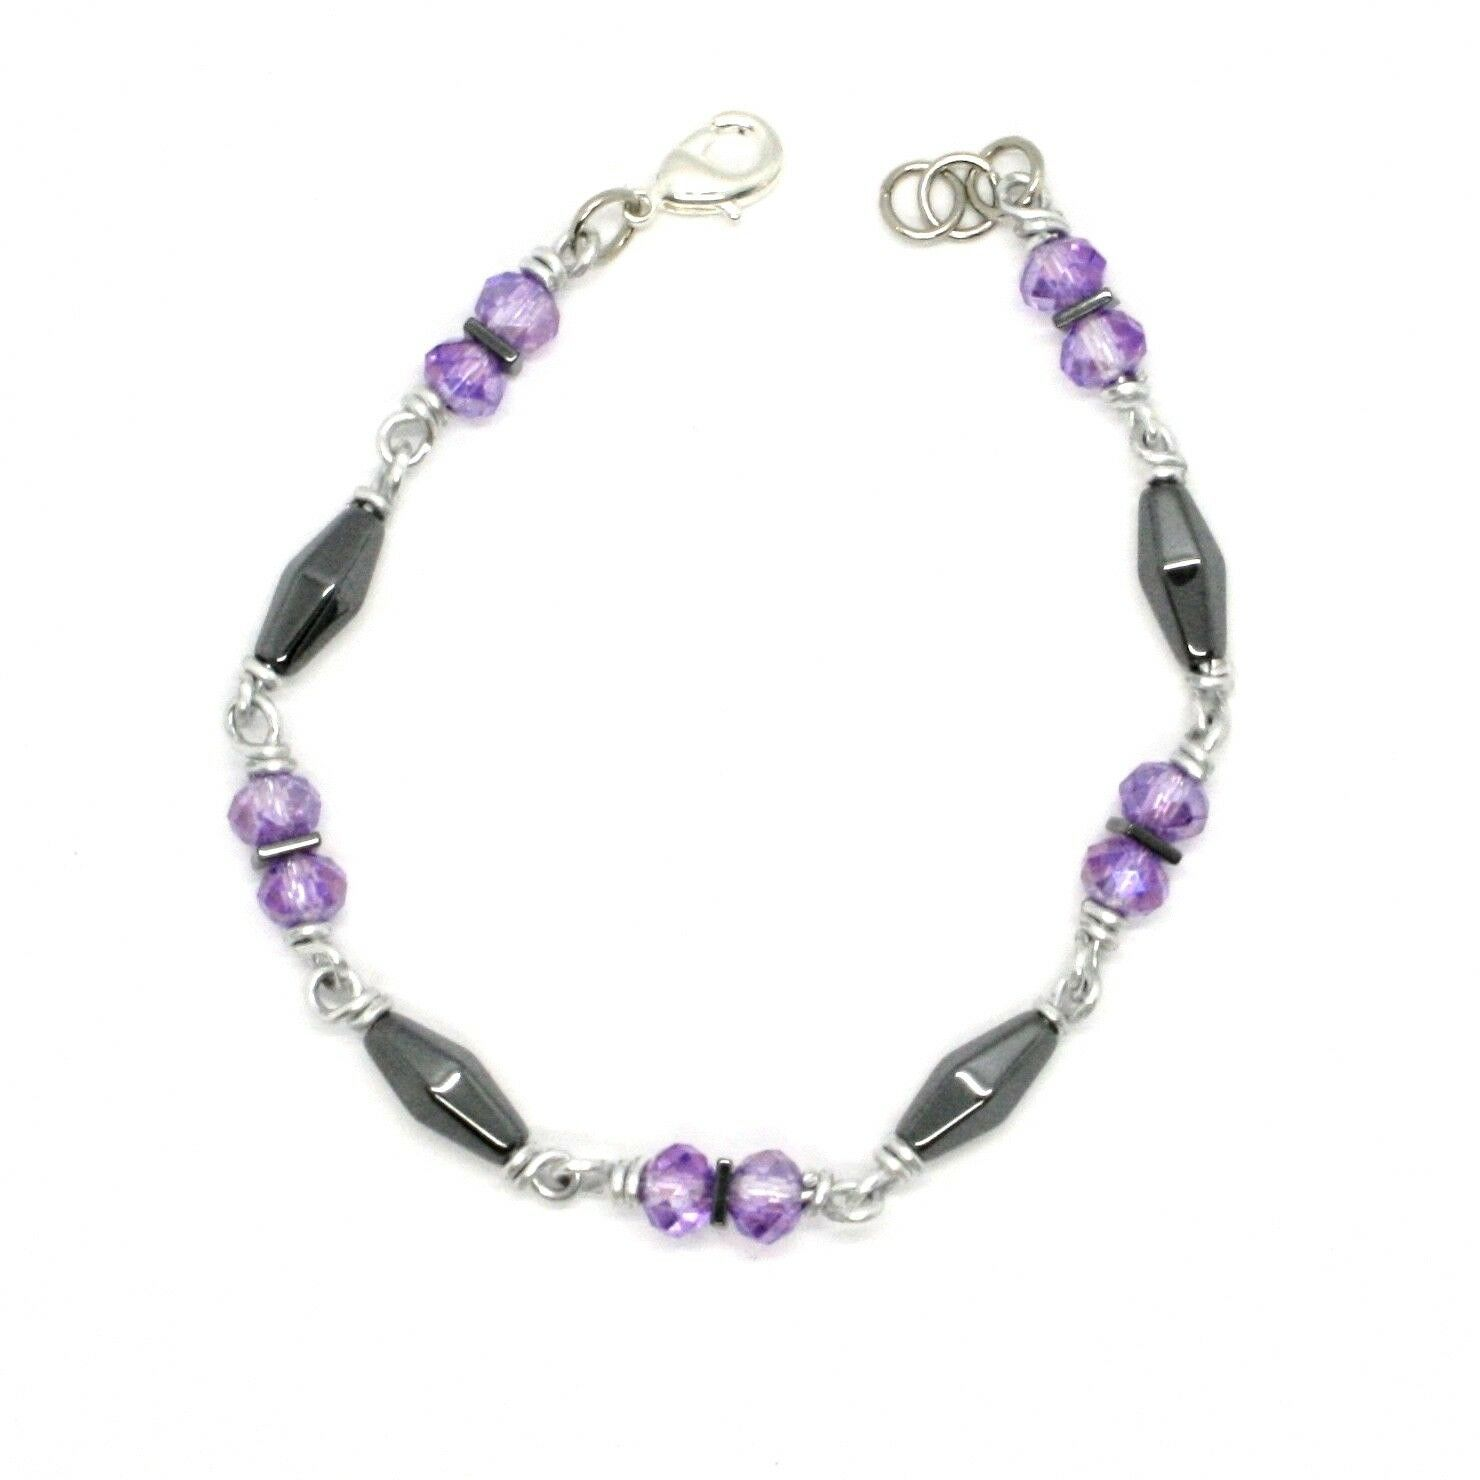 Bracelet the Aluminium Long 19 Inch with Hematite and Crystal Purple